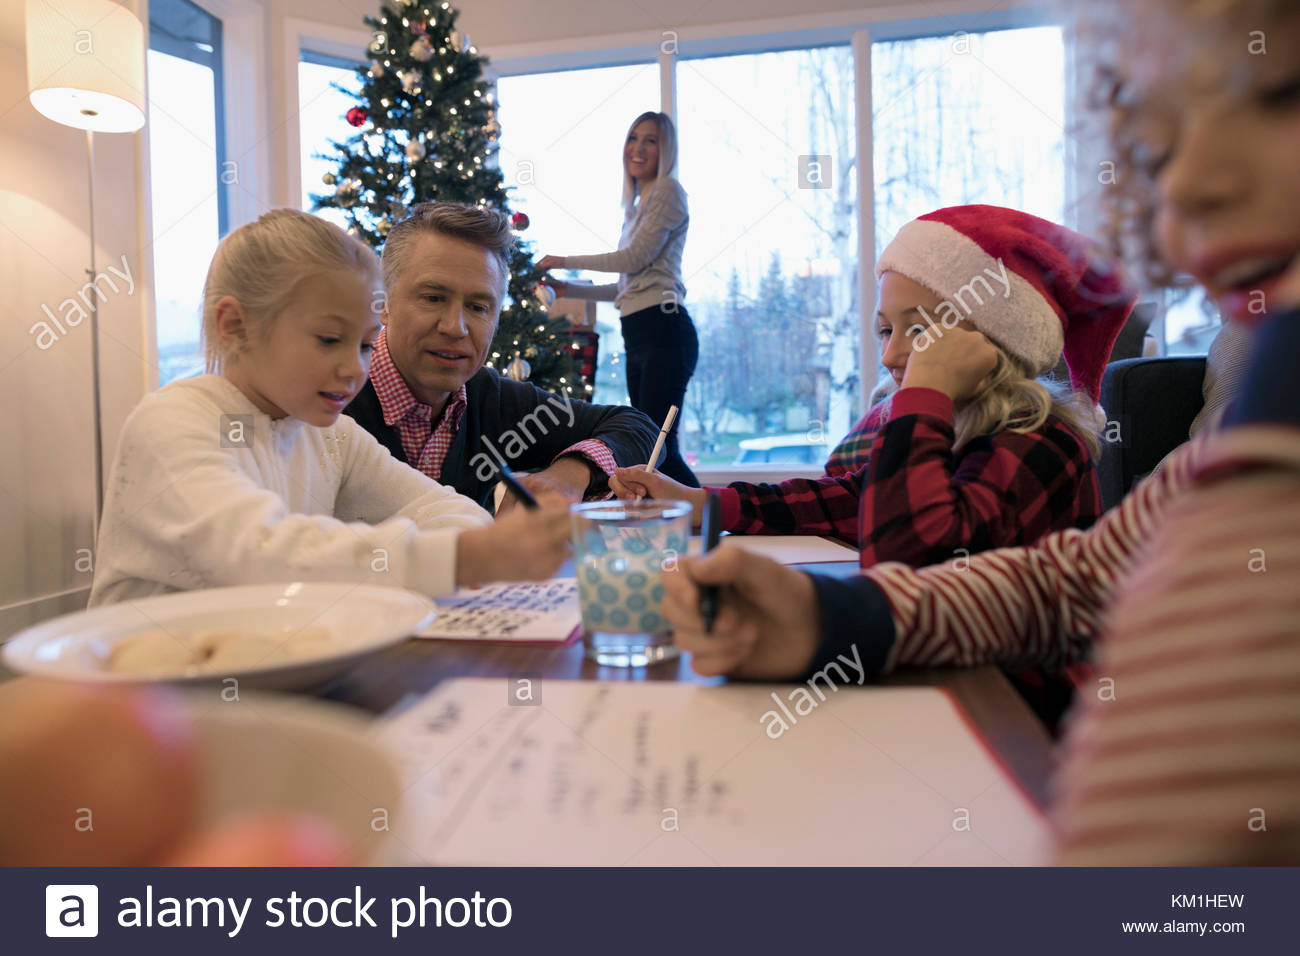 Father watching daughters and son writing Santa letters in Christmas living room - Stock Image